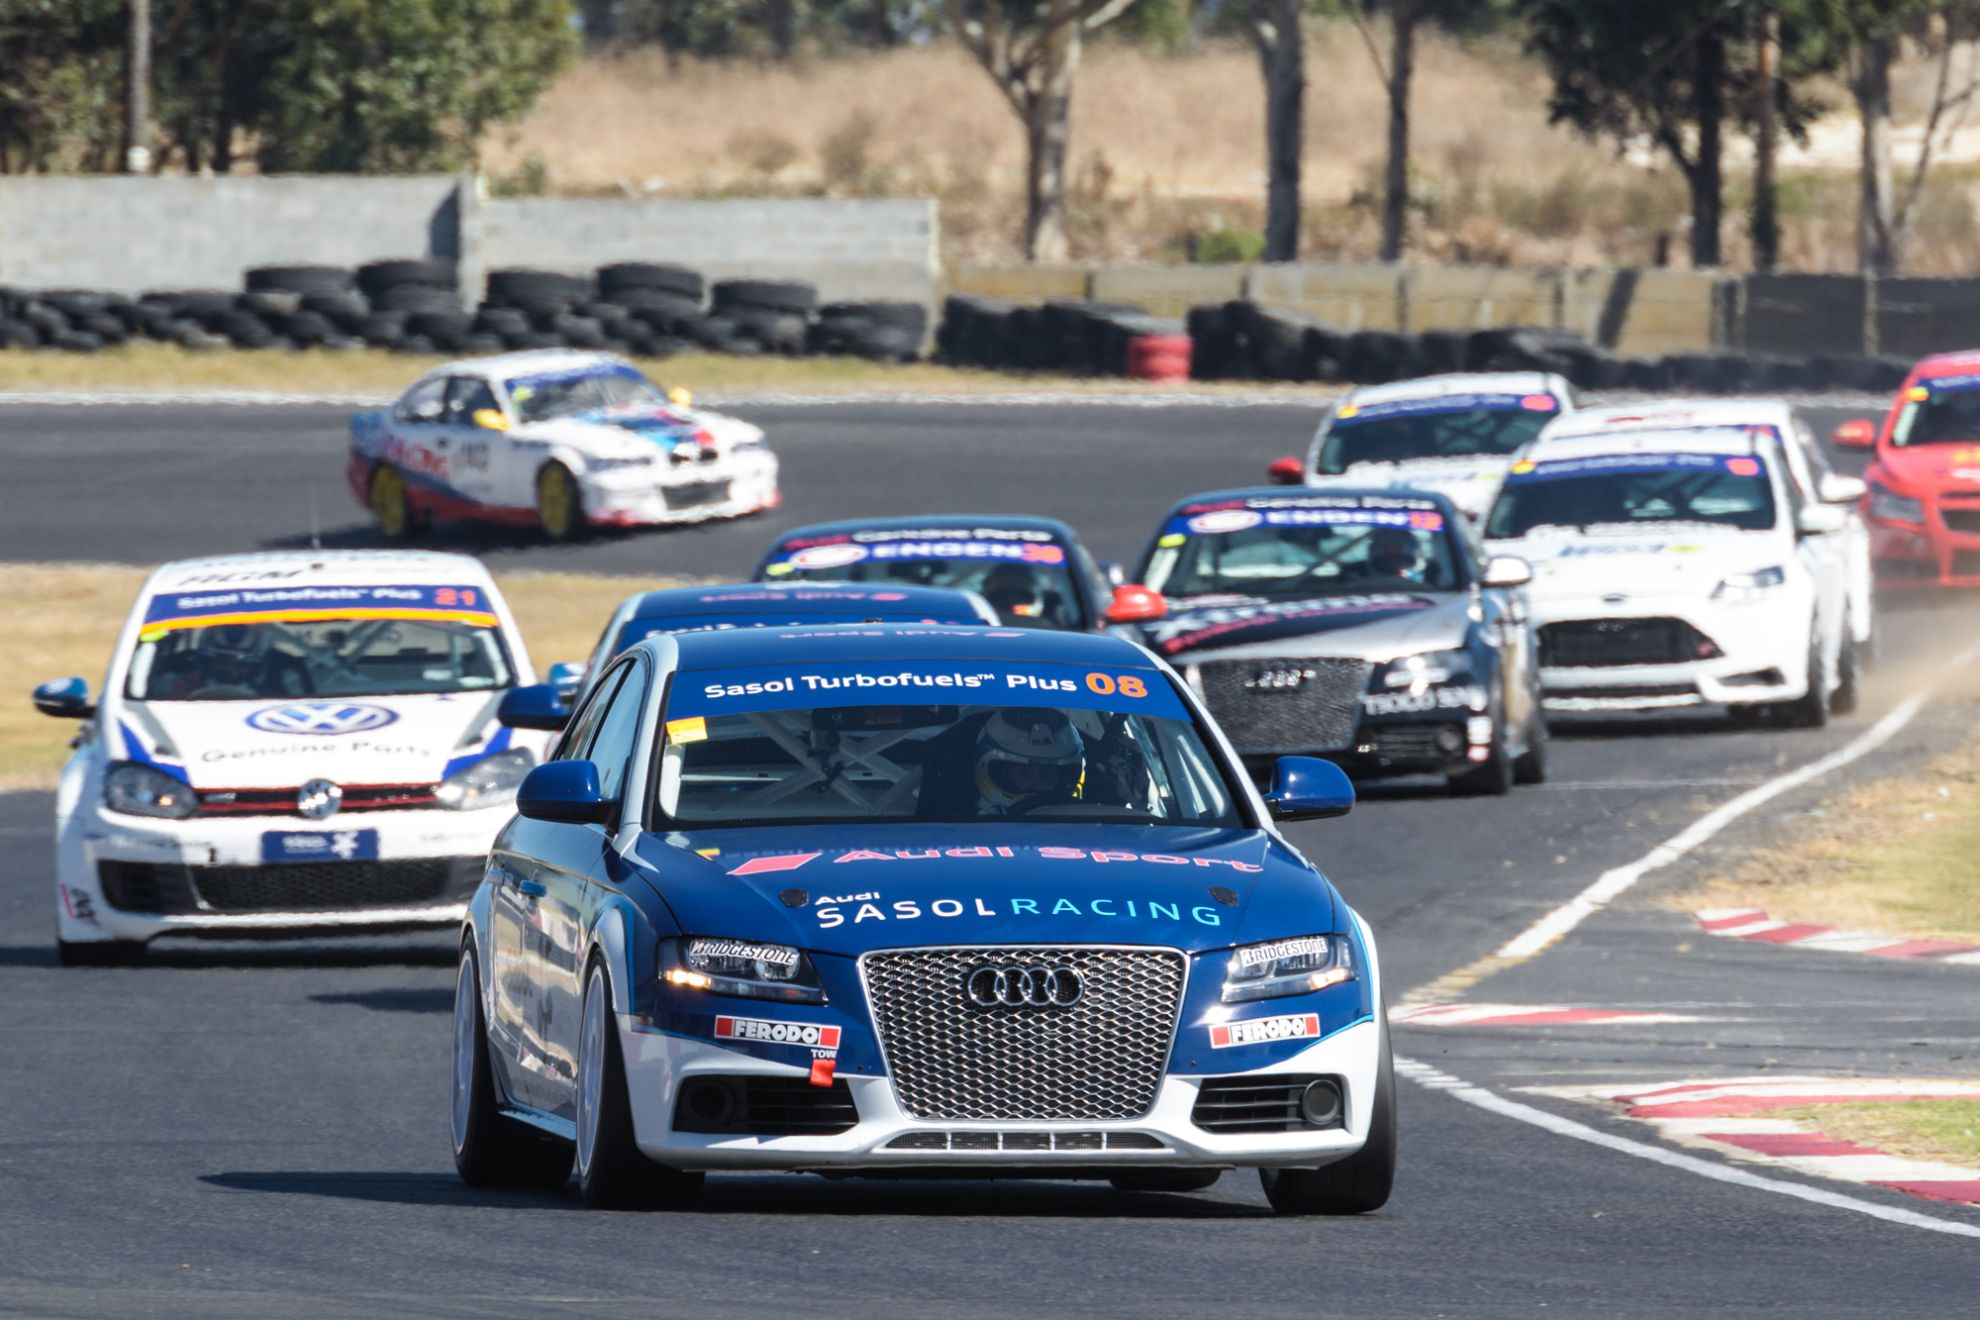 Audi-S4-quattro-racers-in-the-spotlight-at-Killarney-Hennie-Groenewald